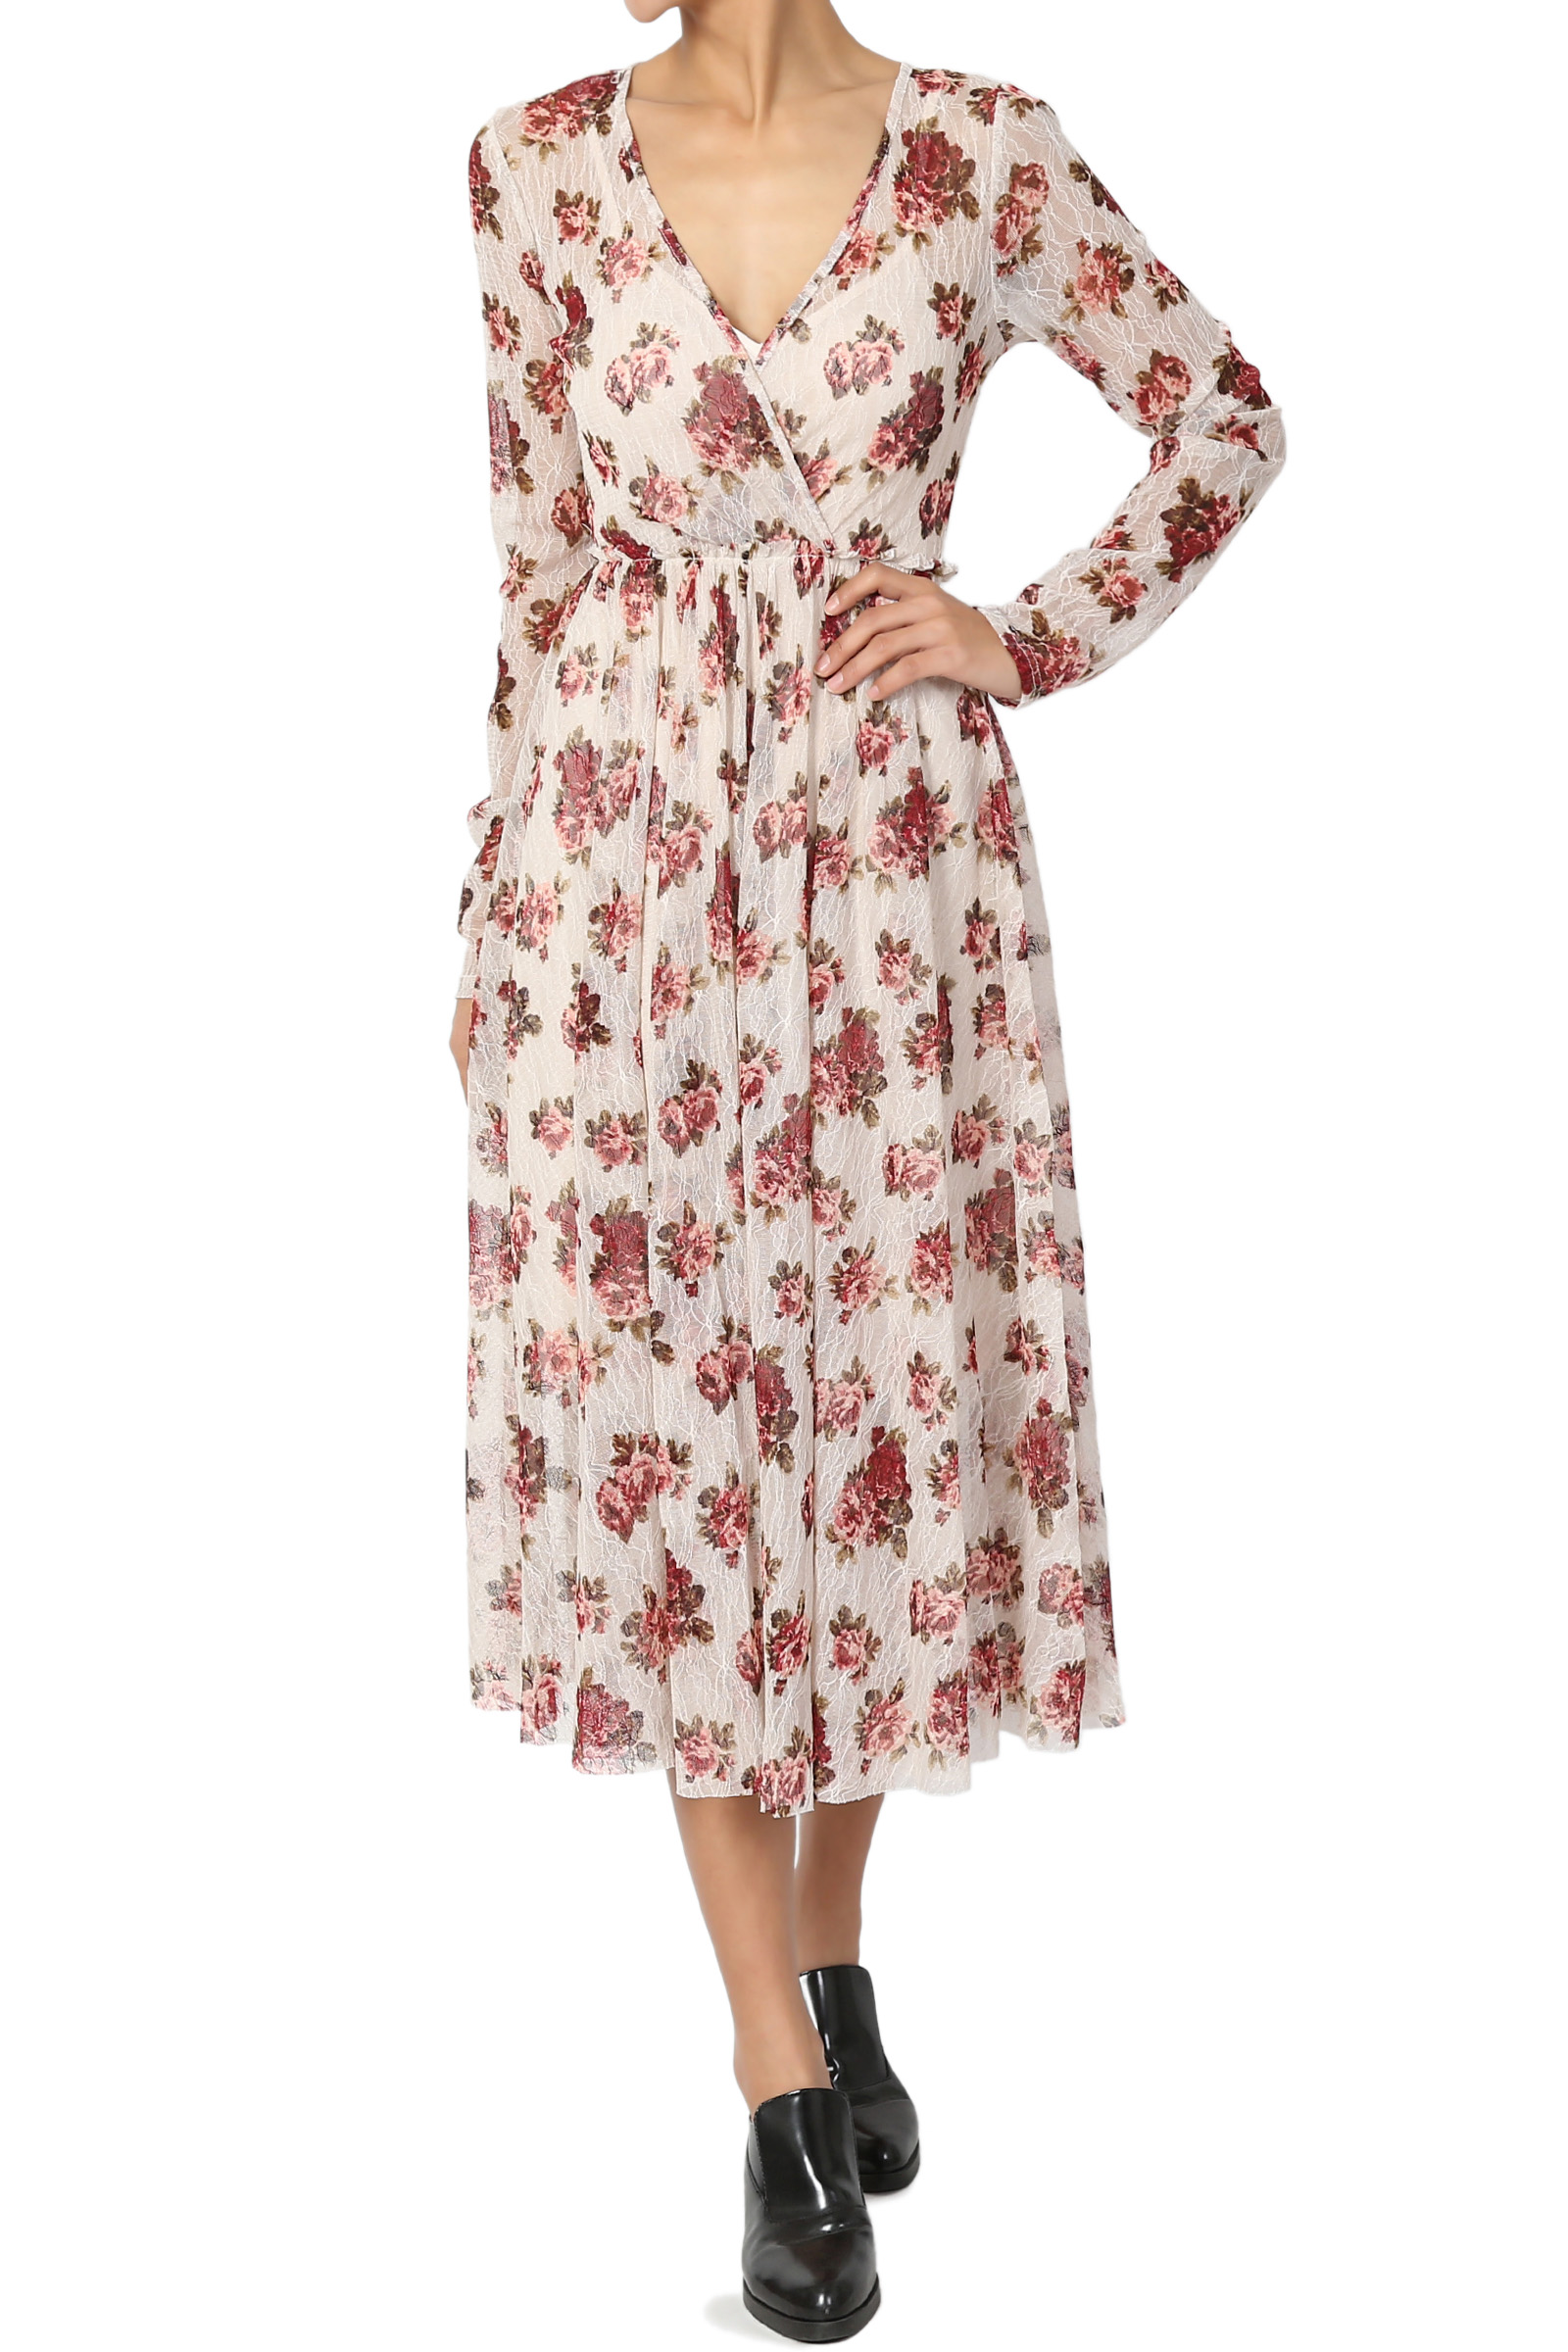 TheMogan Junior's Floral Print Lace Long Sleeve Fit & Flare A-Line Midi Dress